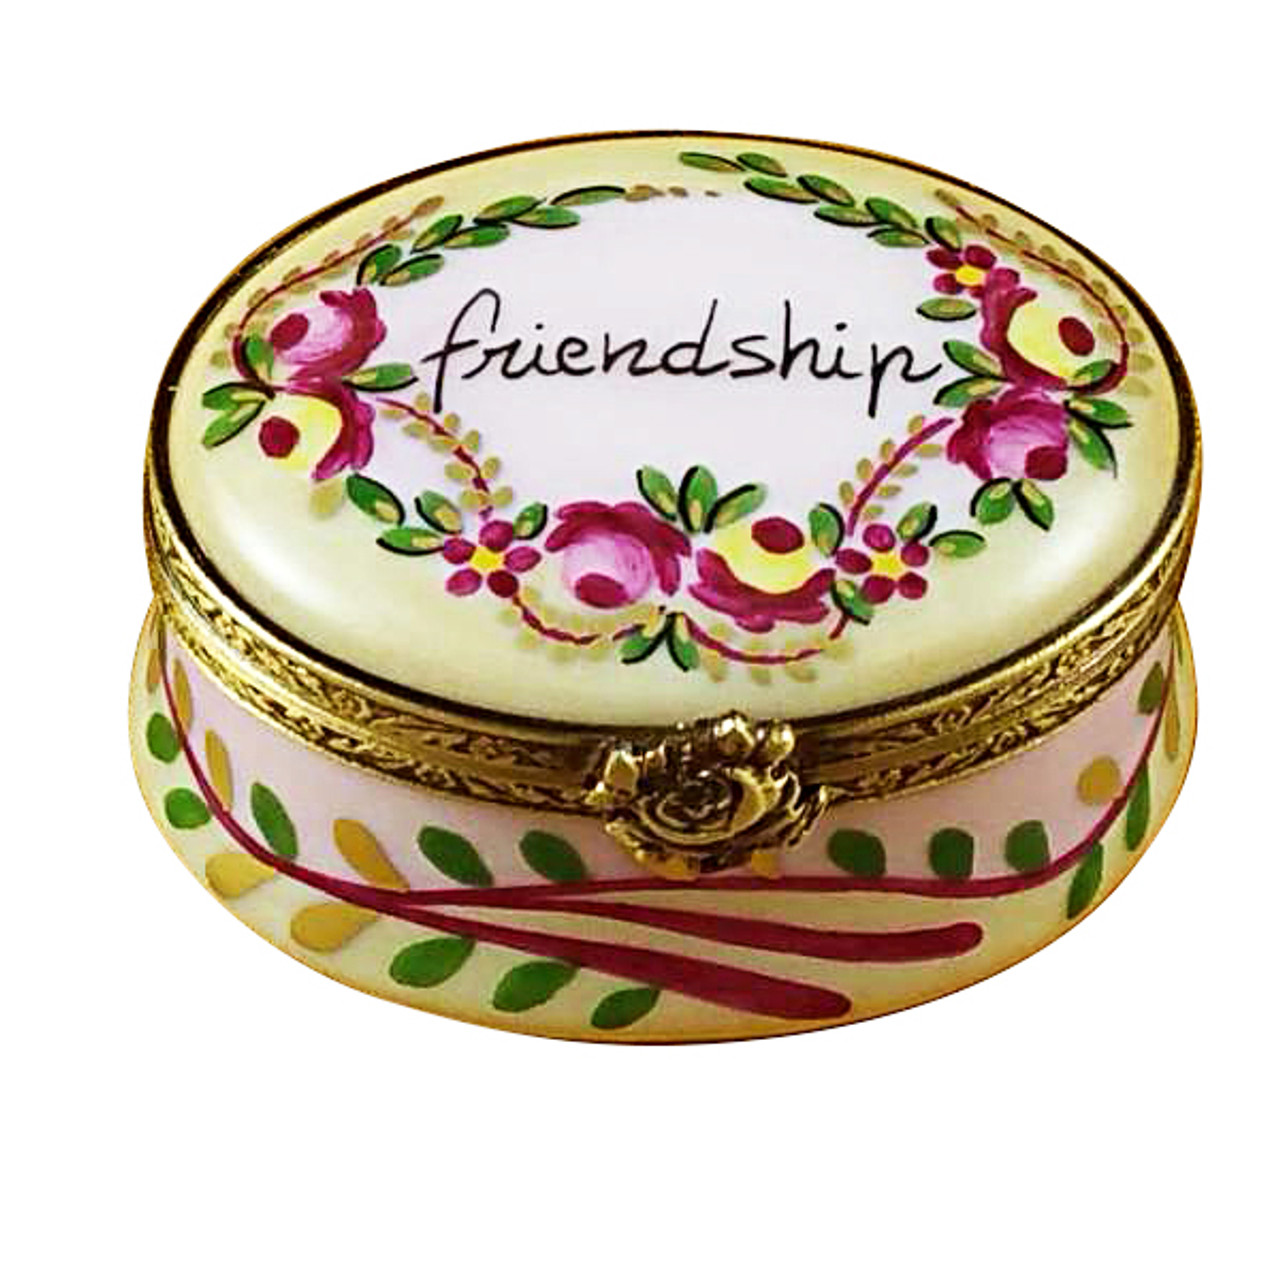 Friendship Oval Rochard Limoges Box